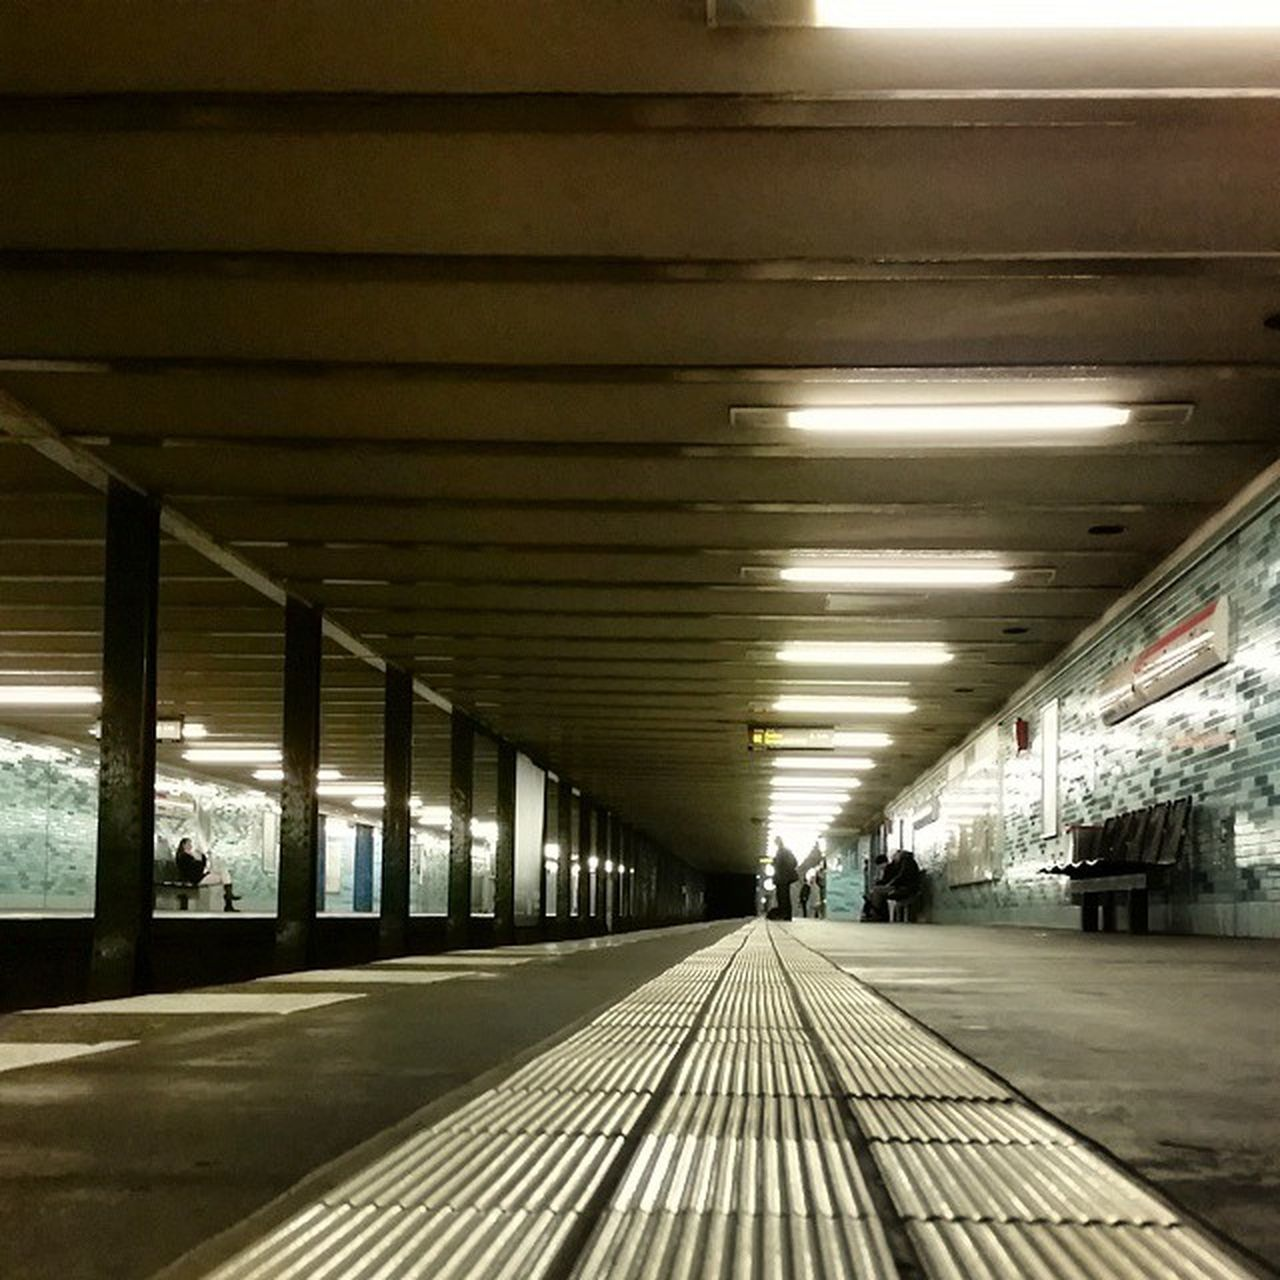 ceiling, transportation, indoors, the way forward, illuminated, built structure, architecture, day, no people